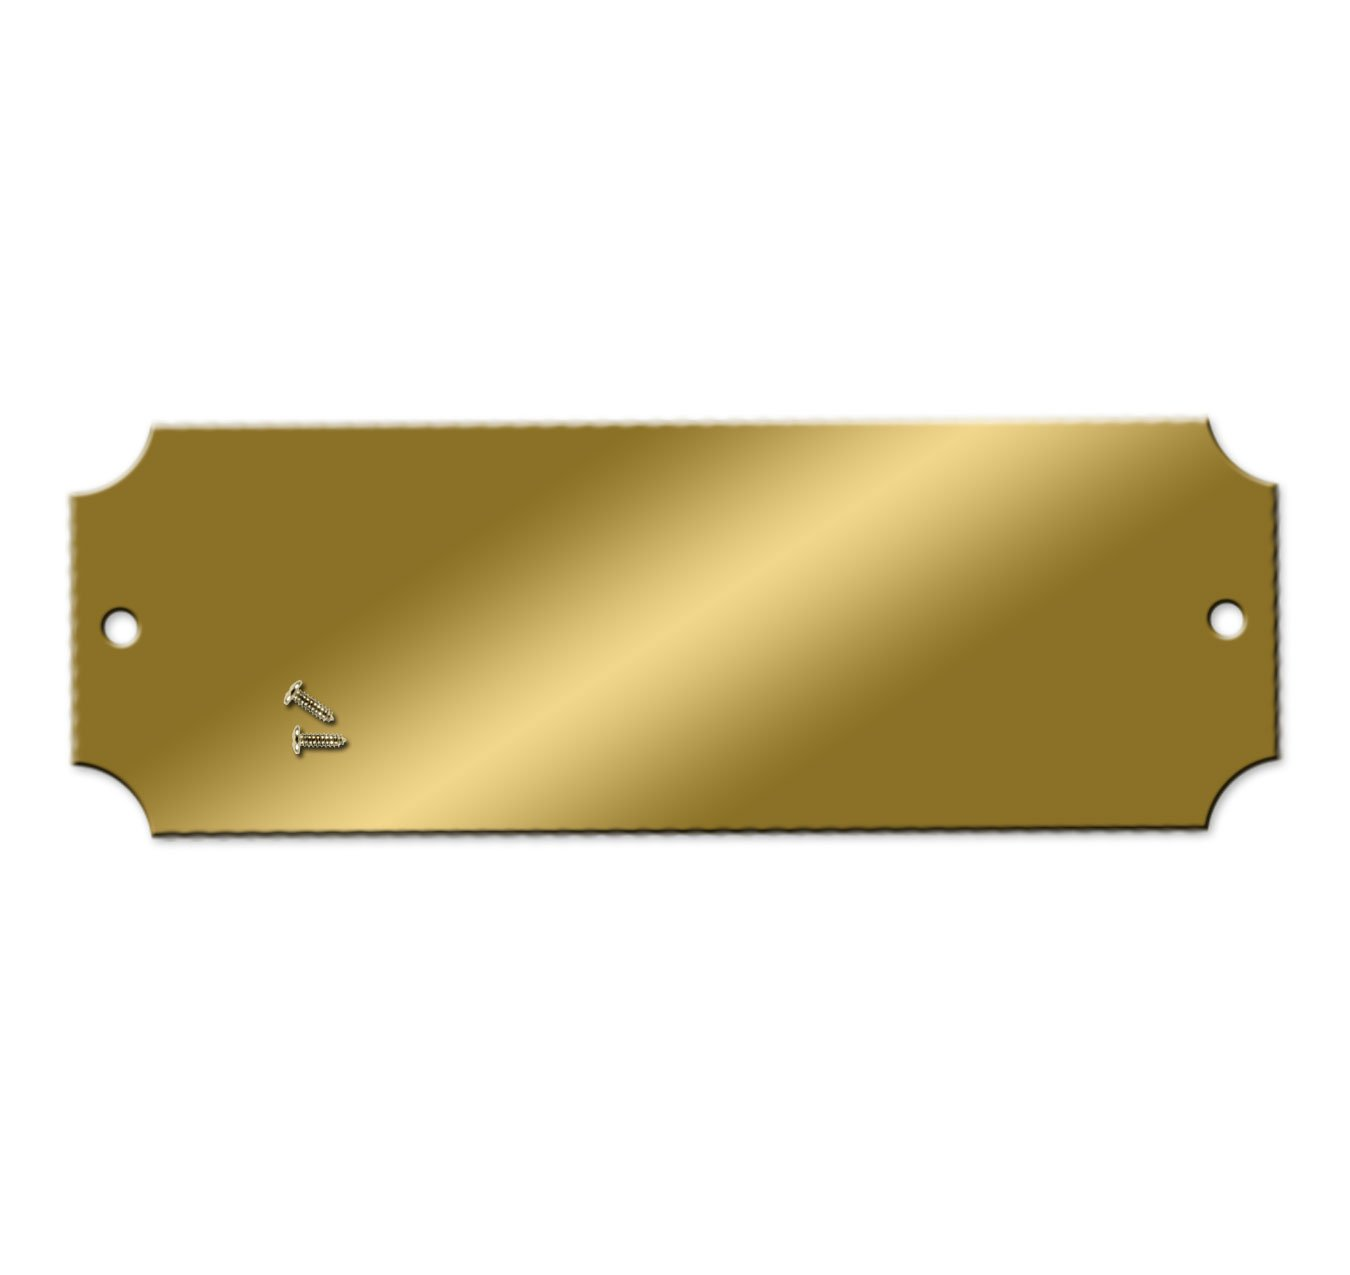 Blank Engraving Brass Plates - 2-1/2 x 7/8 inch - Pk/25